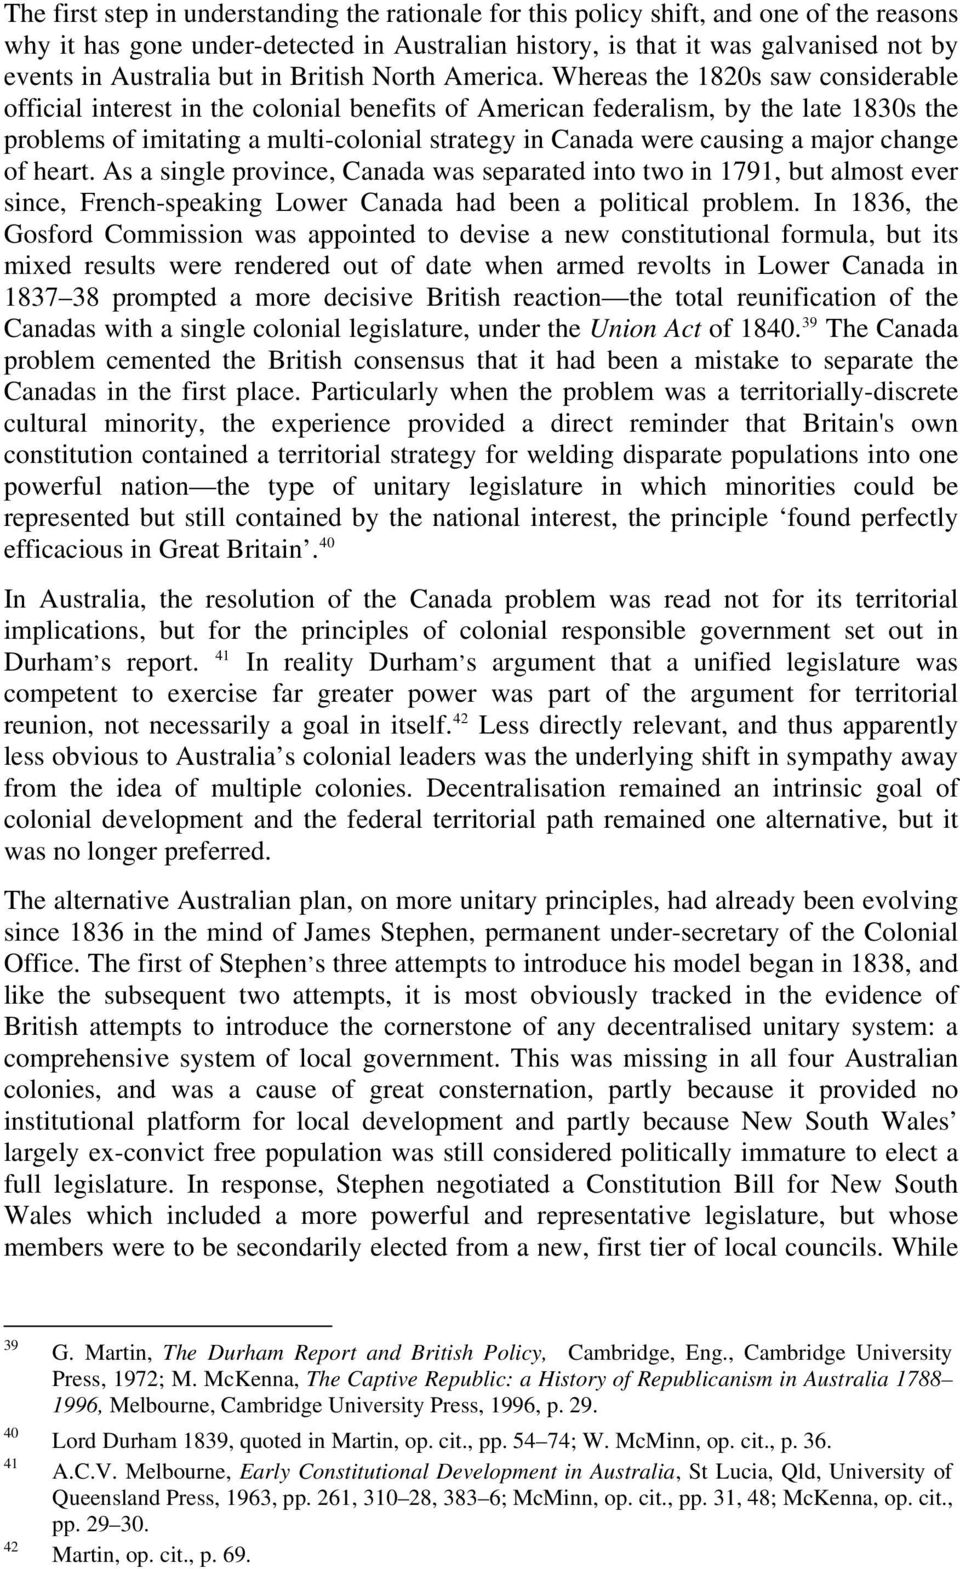 Whereas the 1820s saw considerable official interest in the colonial benefits of American federalism, by the late 1830s the problems of imitating a multi-colonial strategy in Canada were causing a